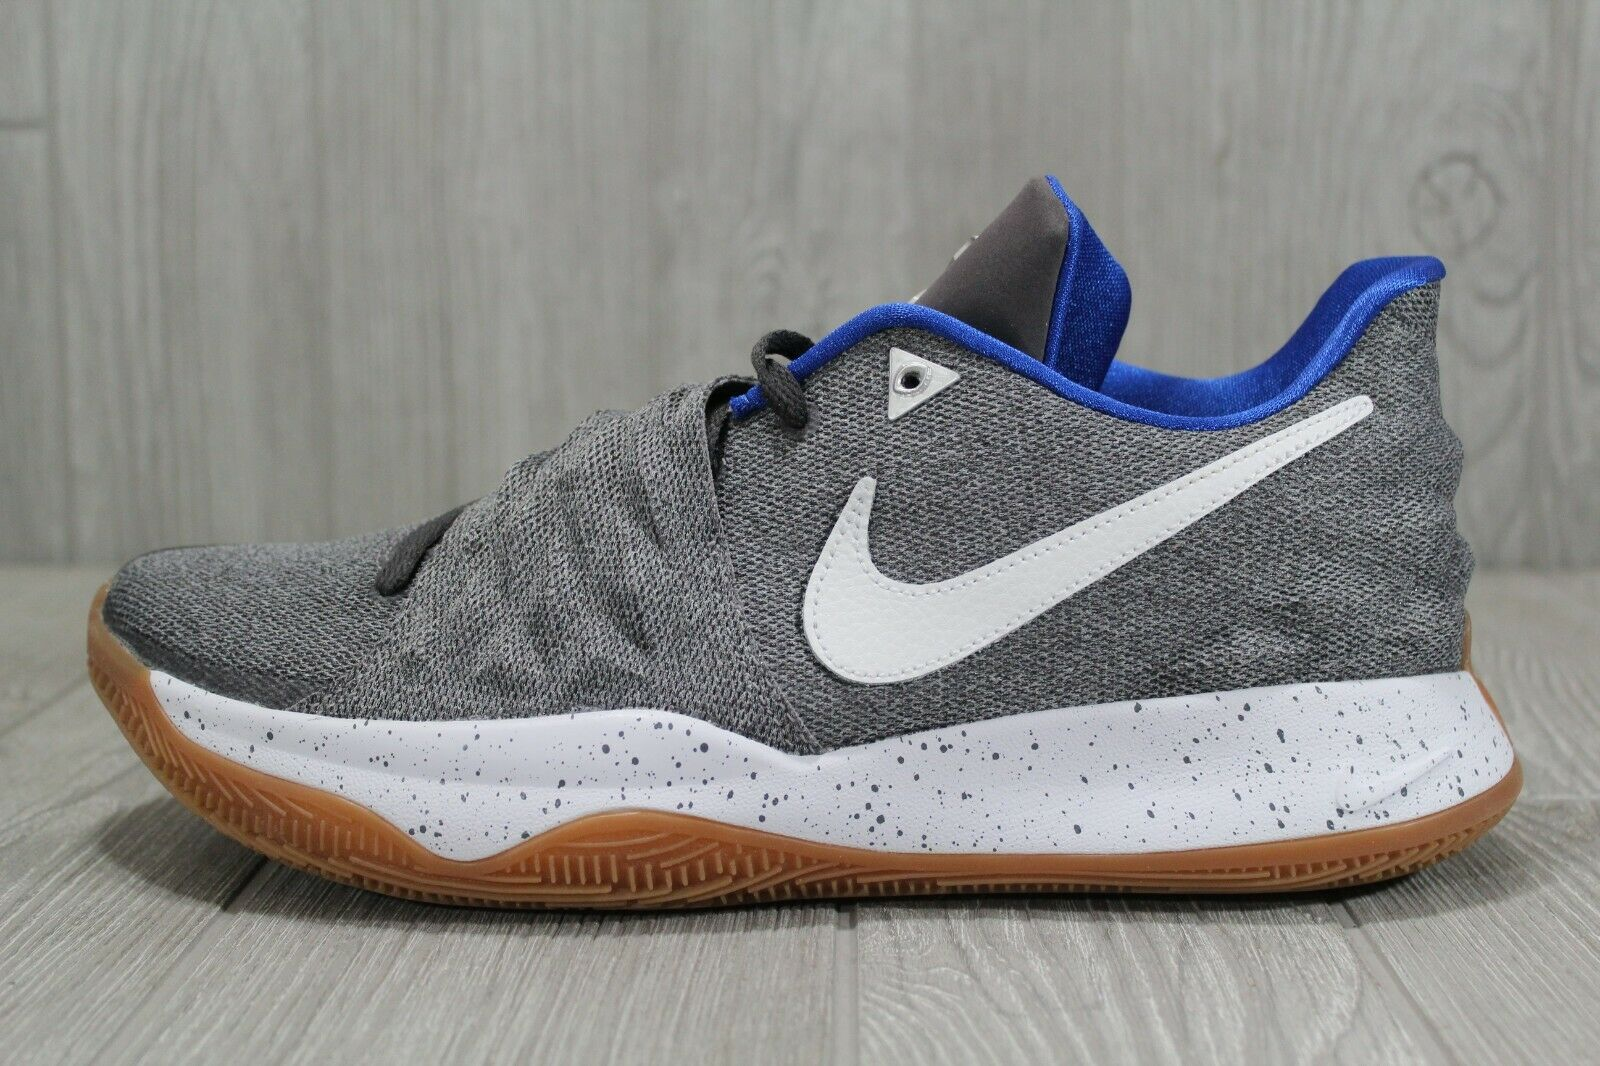 38 Nike Kyrie 4 Low Uncle Drew Grey Basketball shoes 9.5, 11.5, 16 AO8979-005